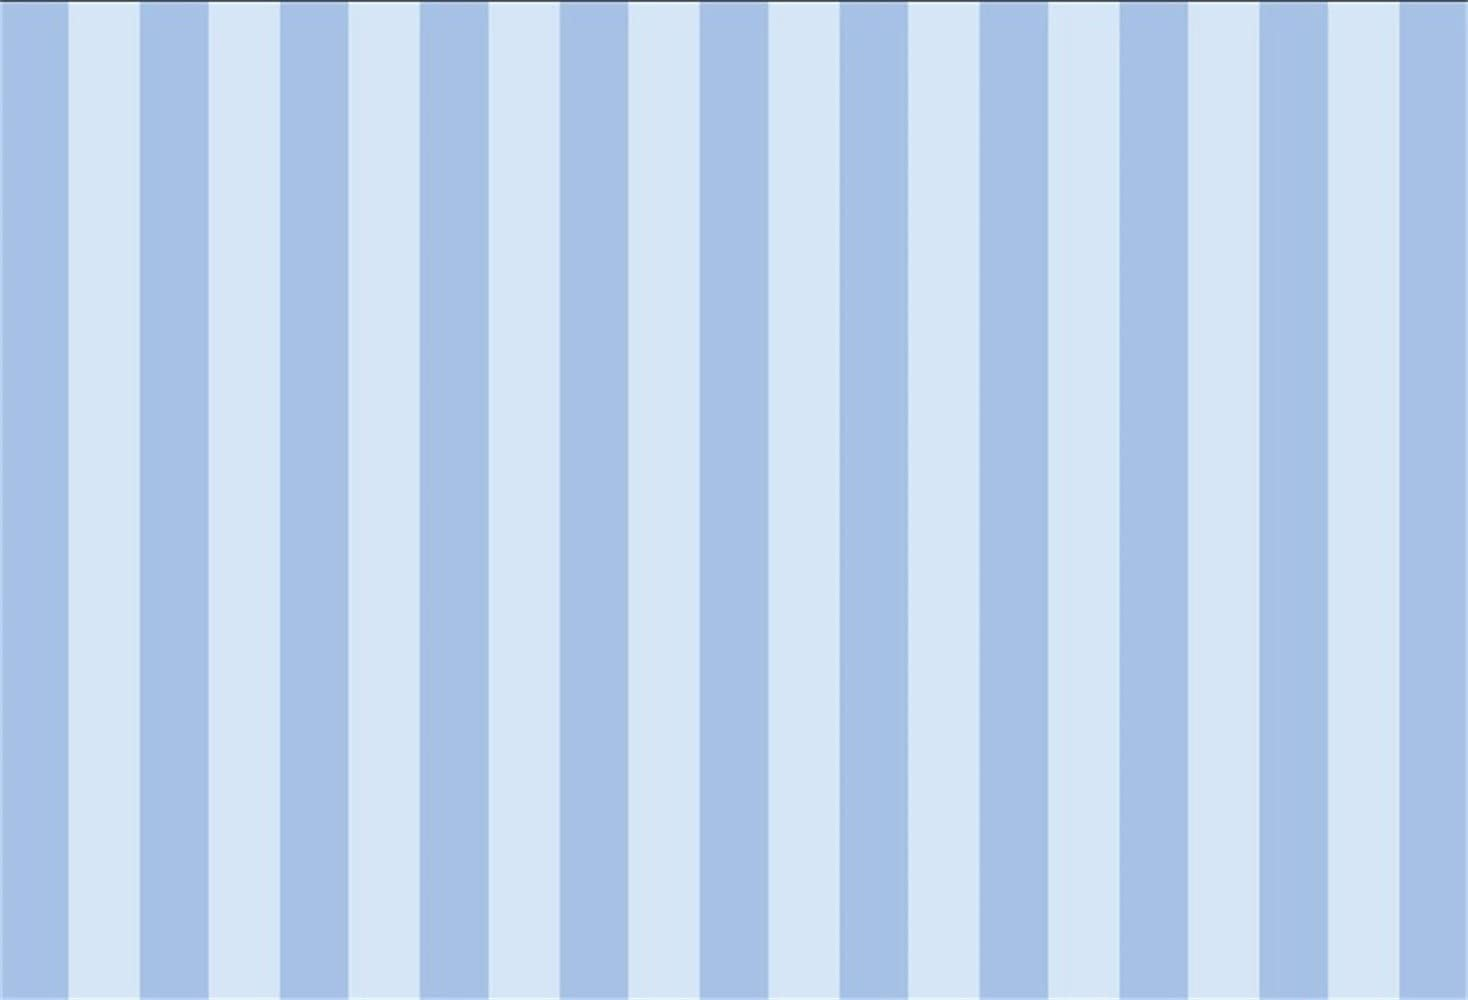 8x8FT Vinyl Wall Photography Backdrop,Ship,Shades of Blue and White Waves Background for Baby Birthday Party Wedding Studio Props Photography